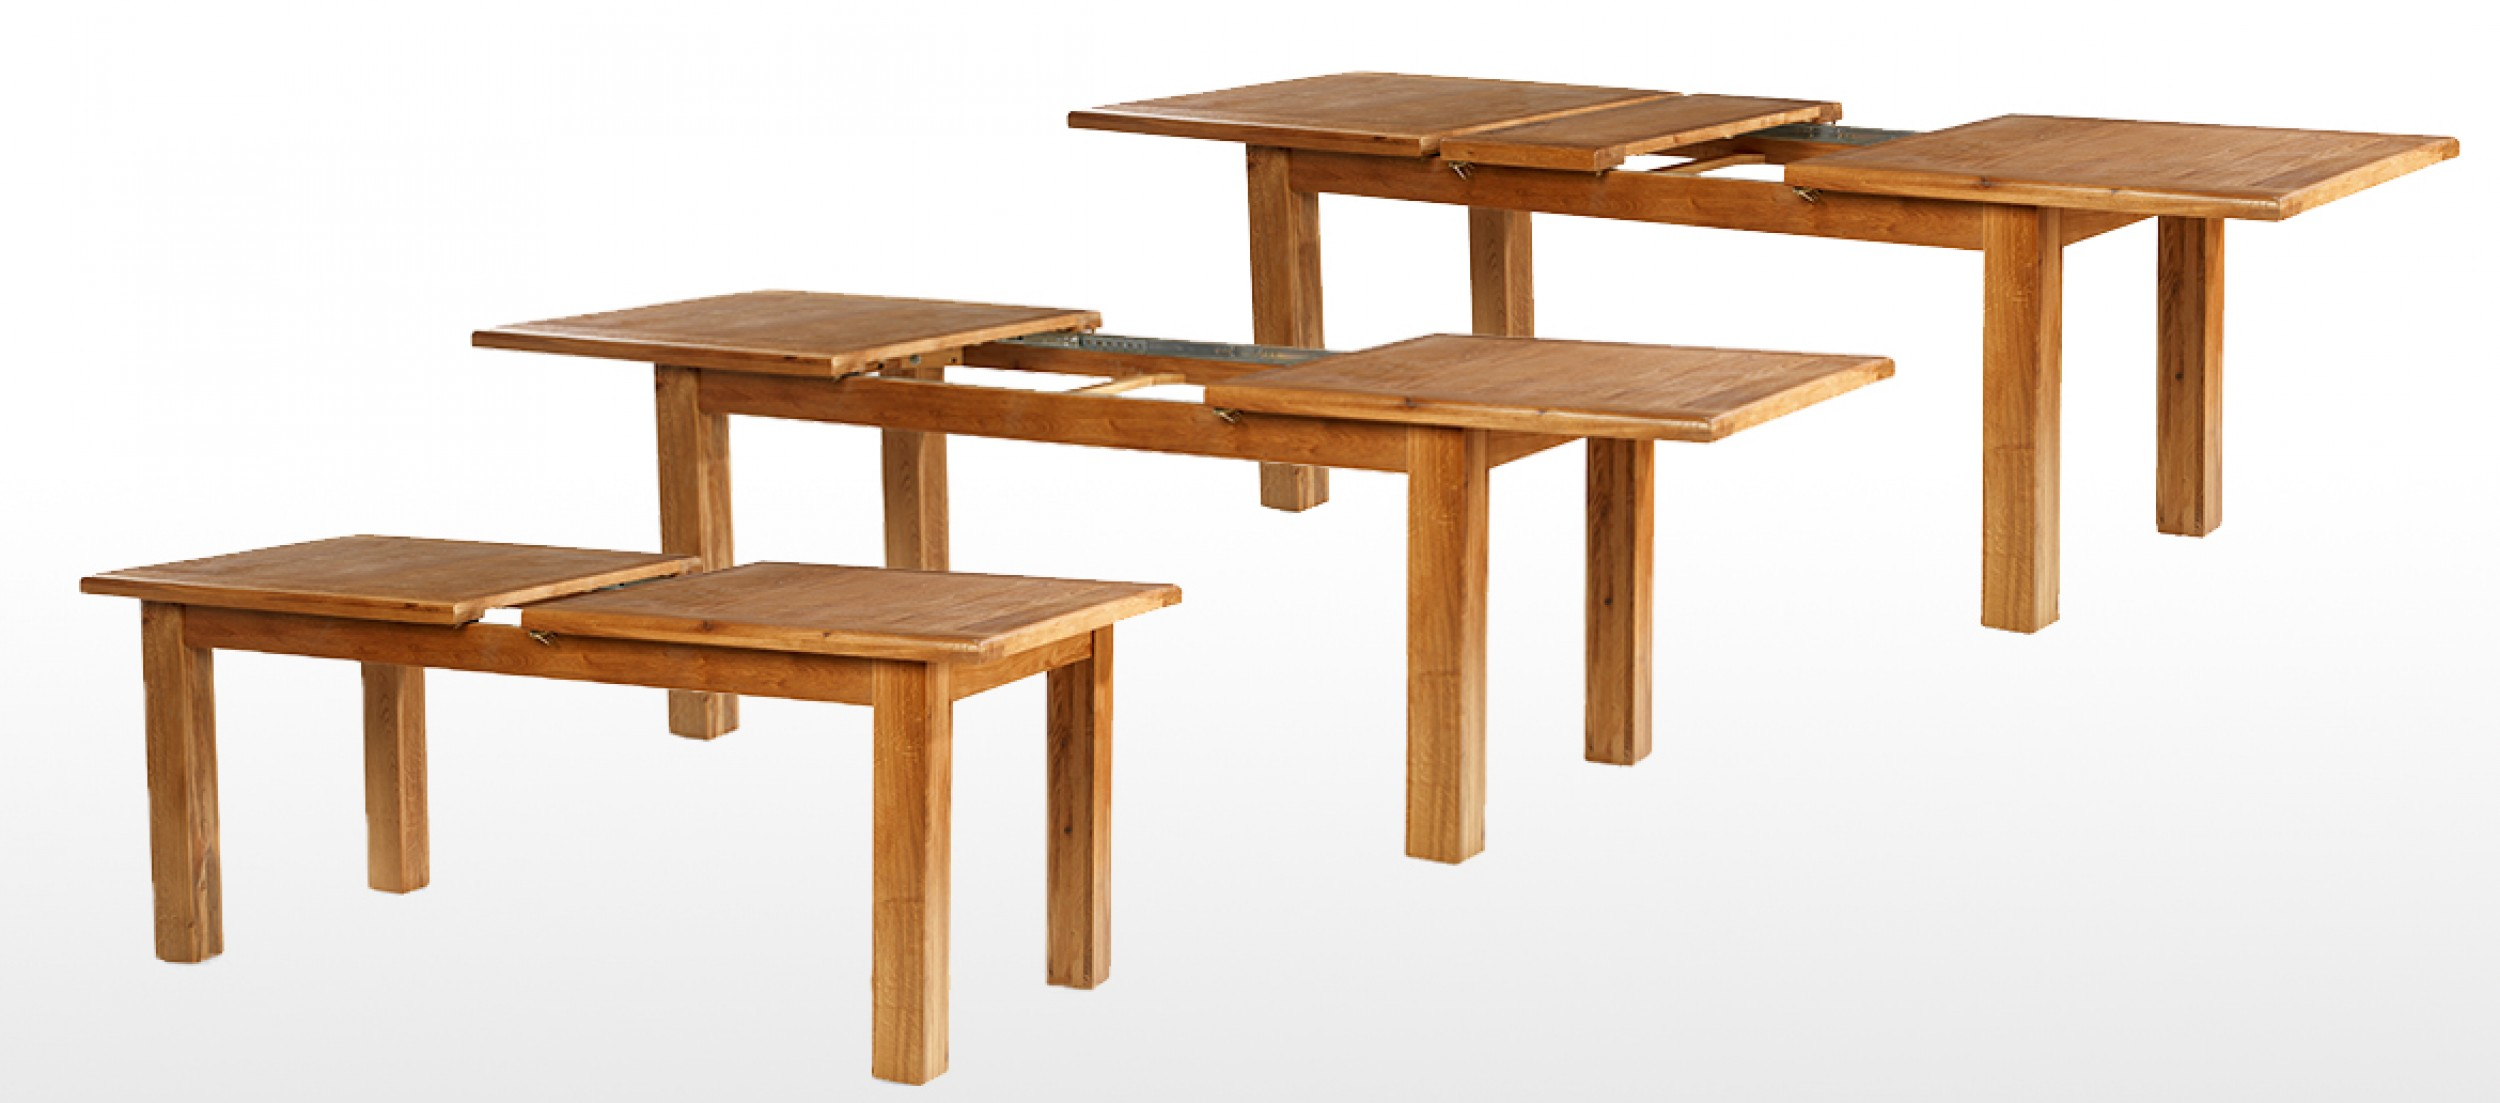 Barham Oak 132 198 Cm Extending Dining Table And 6 Chairs